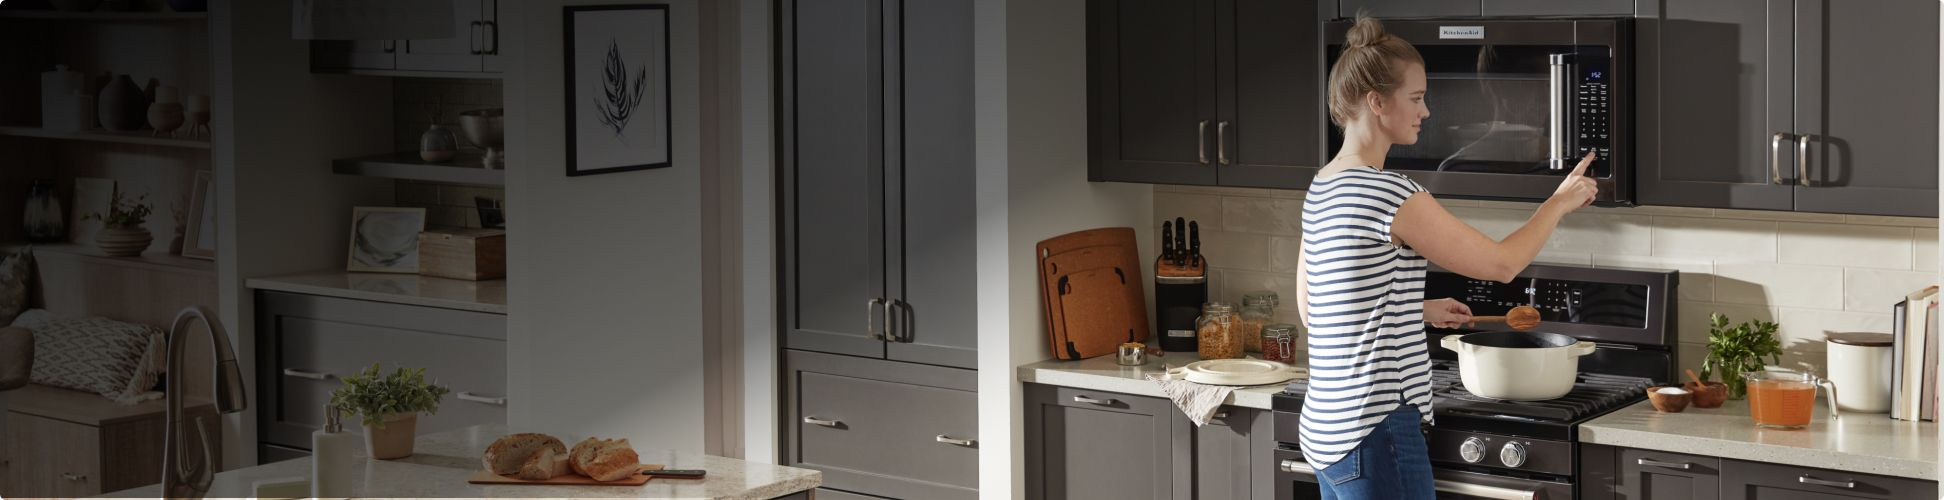 Cooking with a KitchenAid® Range and Microwave..